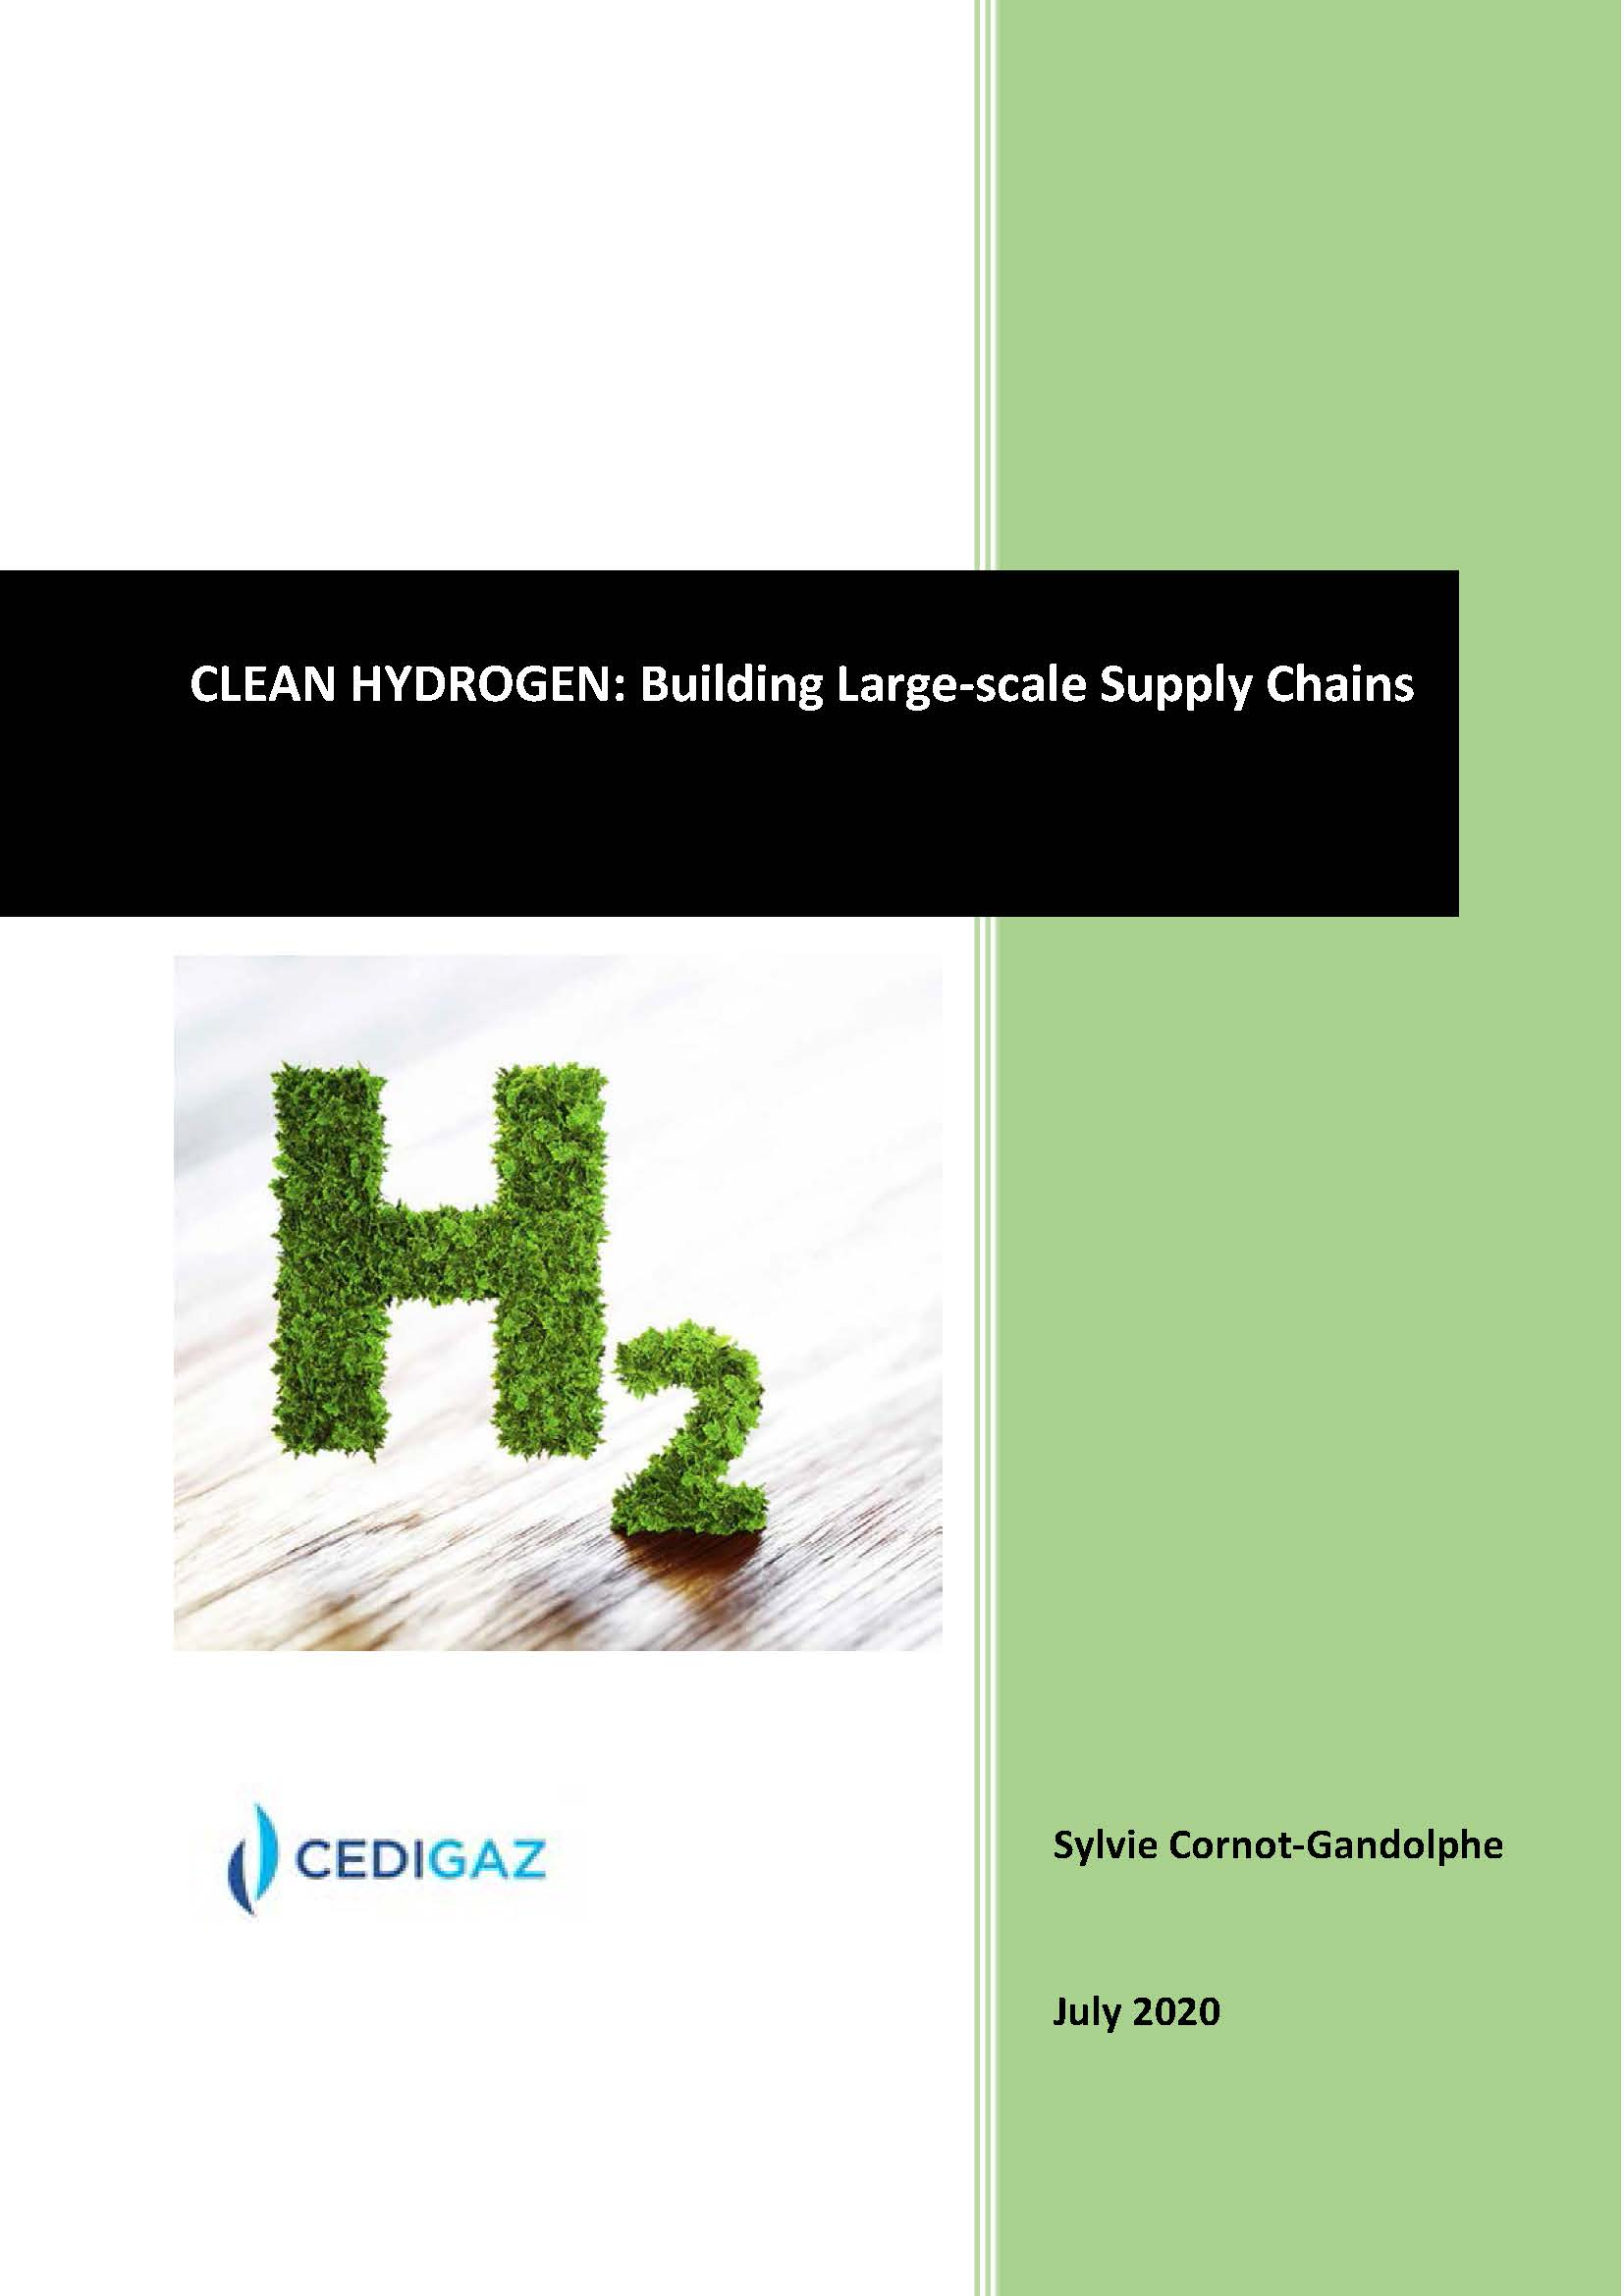 CLEAN HYDROGEN: BUILDING LARGE-SCALE SUPPLY CHAINS